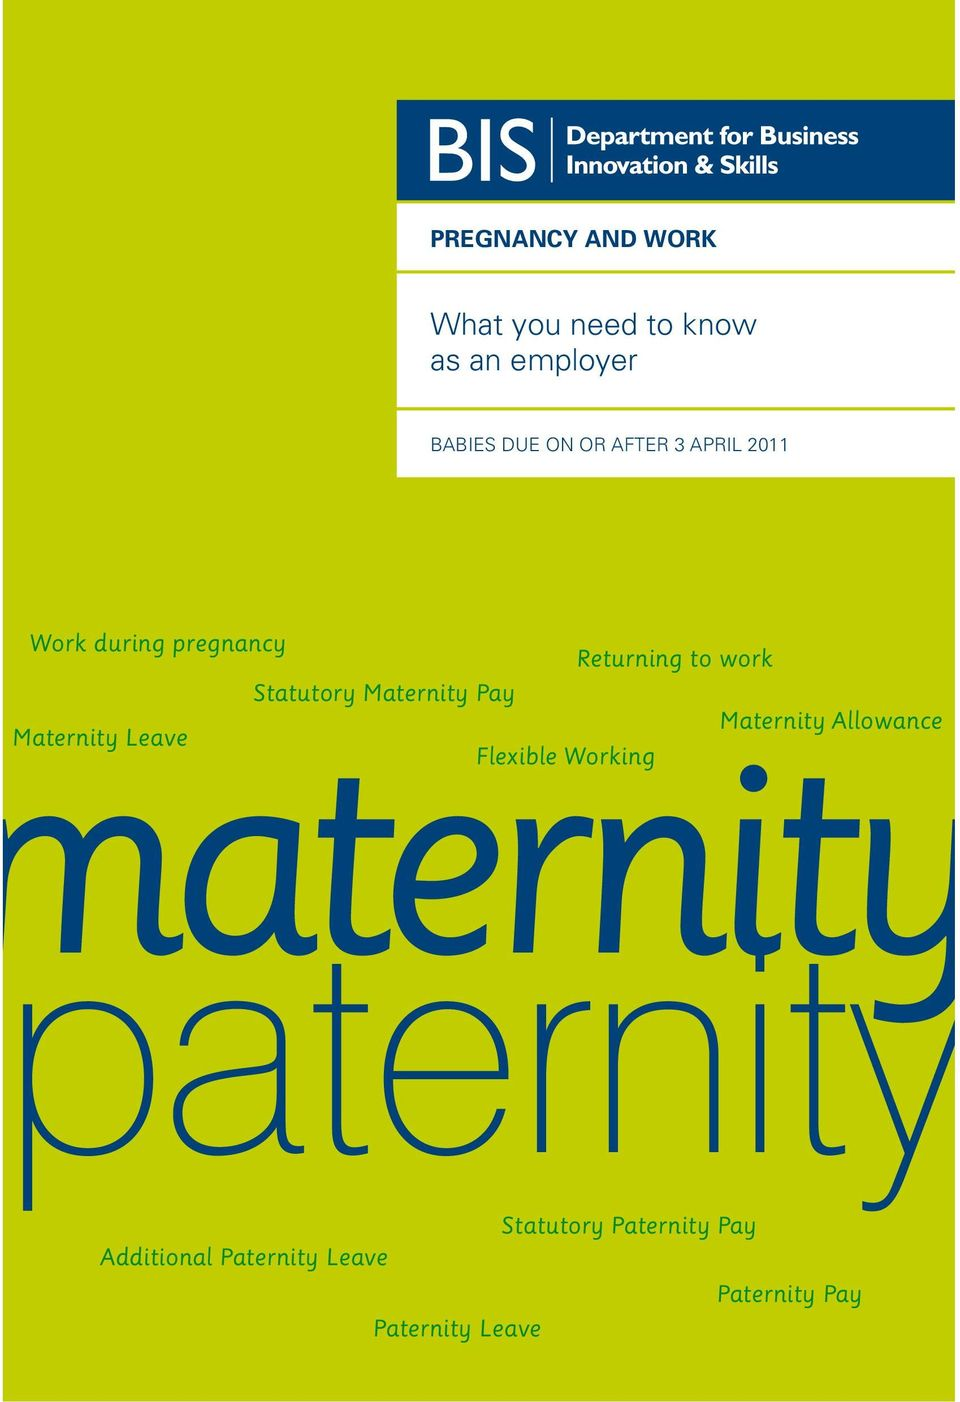 Returning to work Statutory Maternity Pay Maternity Allowance Maternity Leave aternity